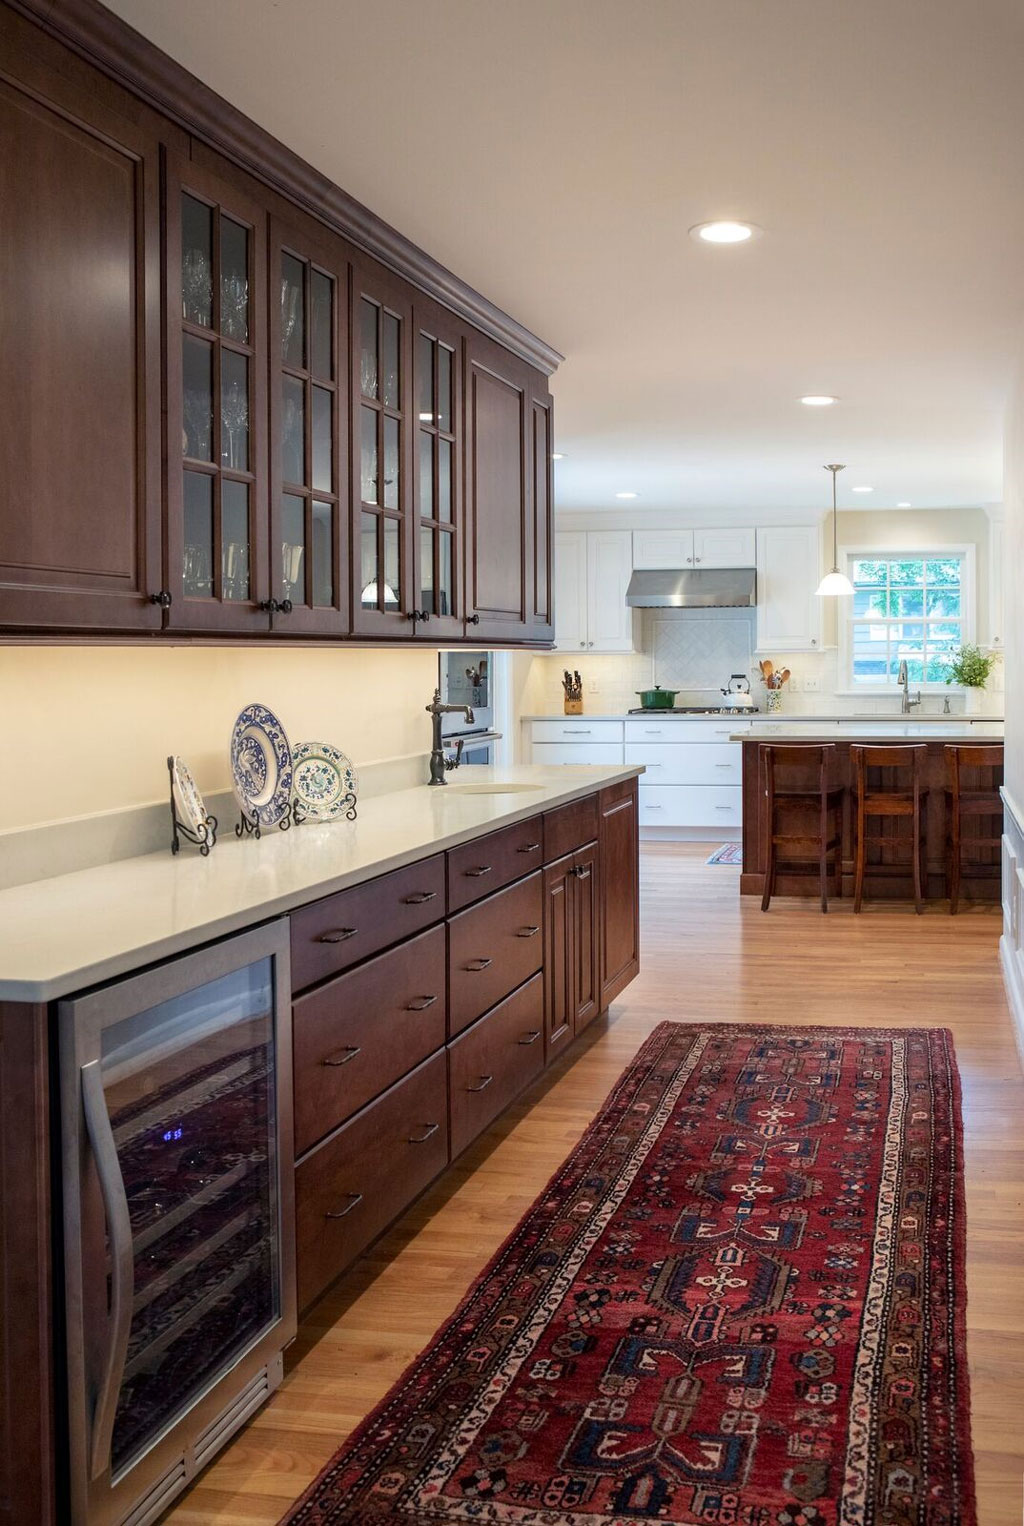 Roeser-Home-Remodeling-St-Louis-home-addition-interior-kitchen-Capriglione